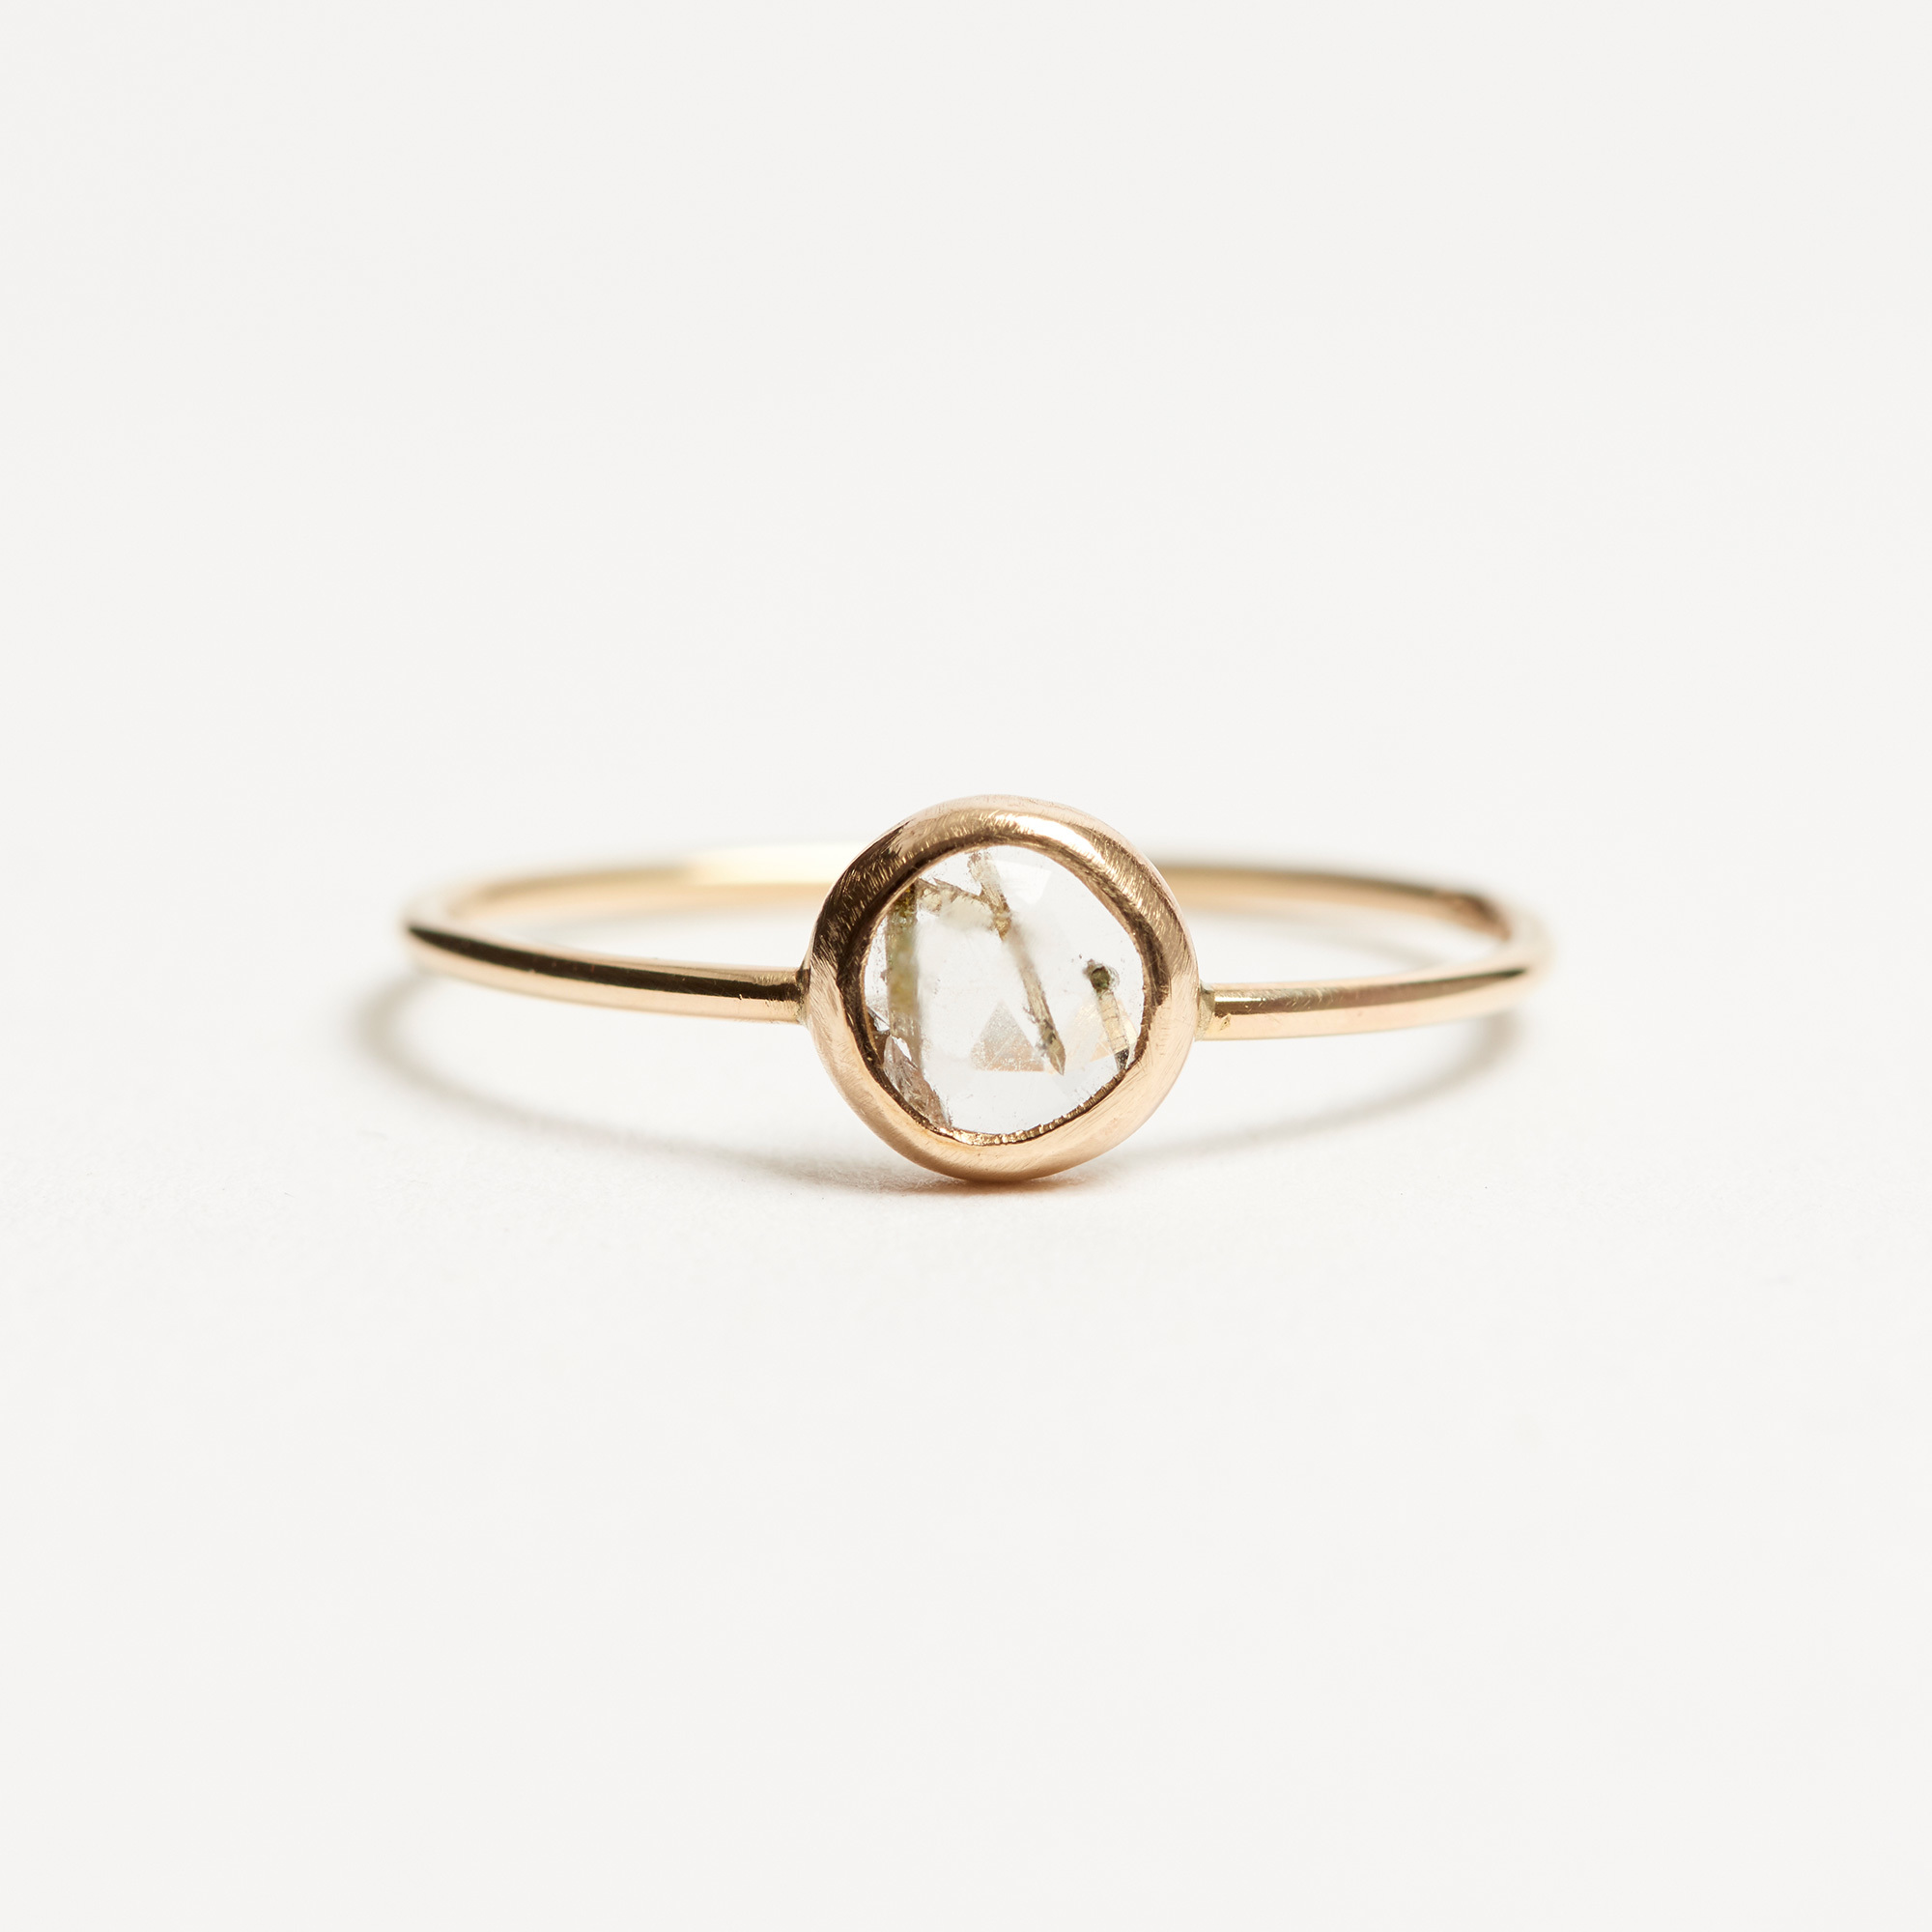 quartz side minimalist by frost thin fine jewellery eliise go maar rose love products q rings